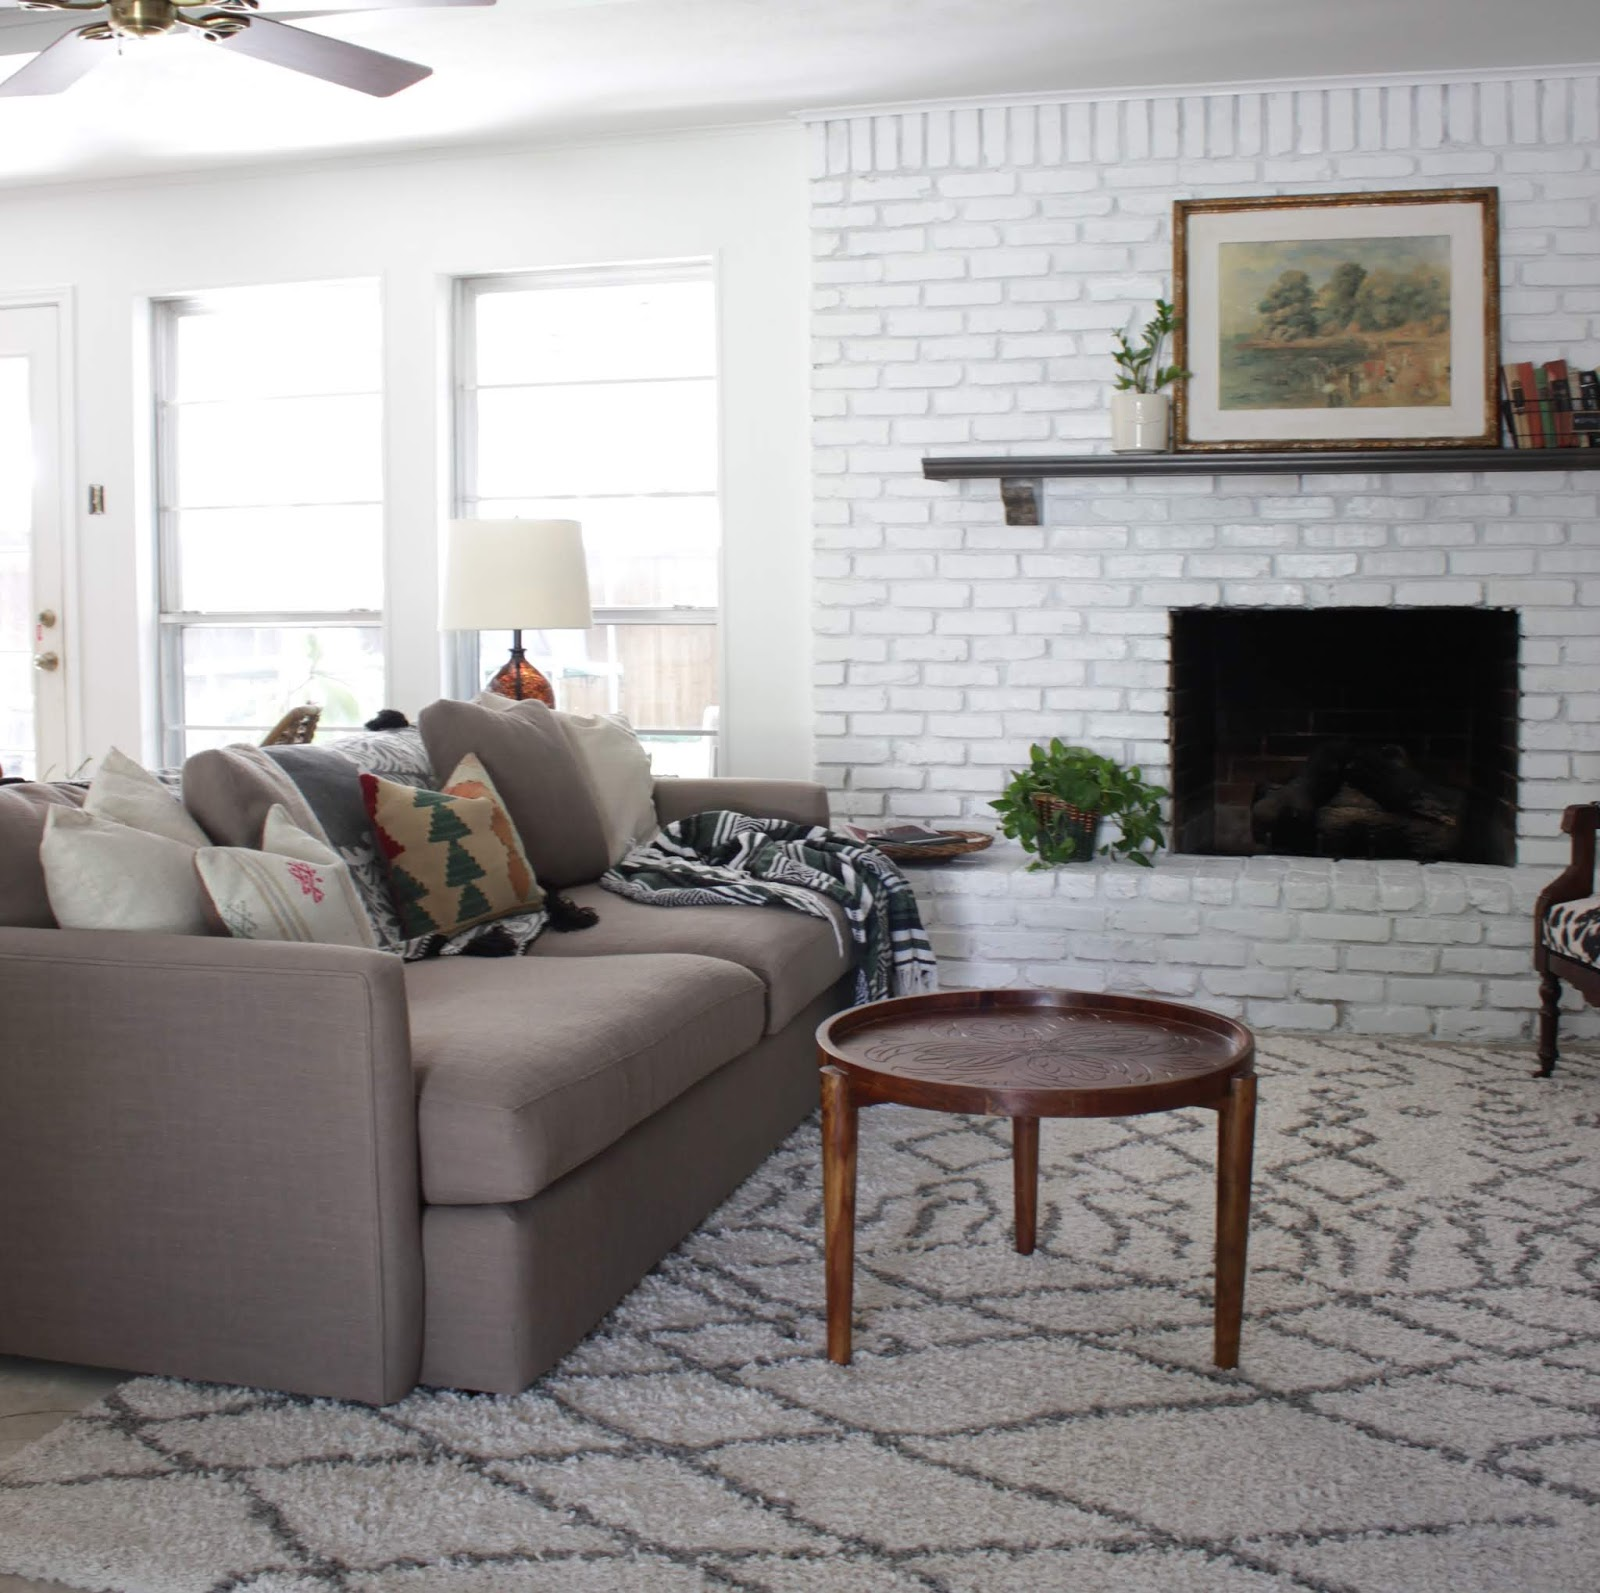 Tips and Tricks for Finding Second Hand Furniture   House Homemade